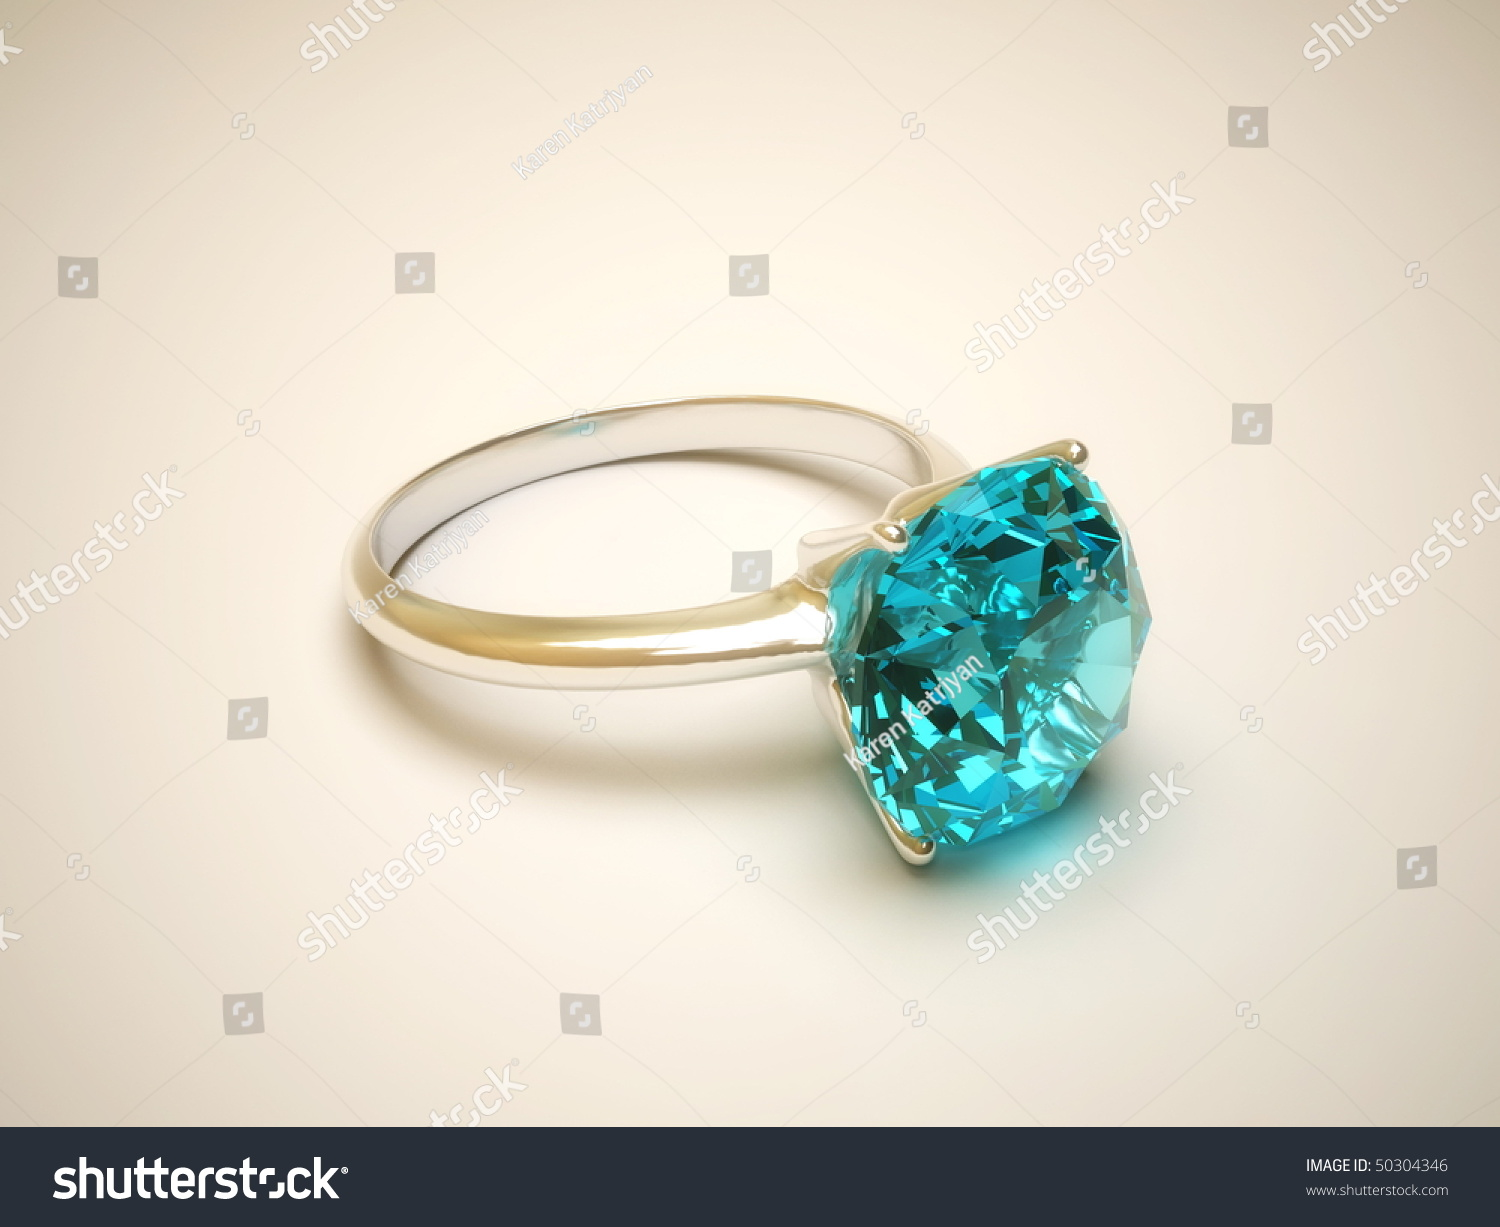 Images of Ring Cyan 1920x1200 - #SC